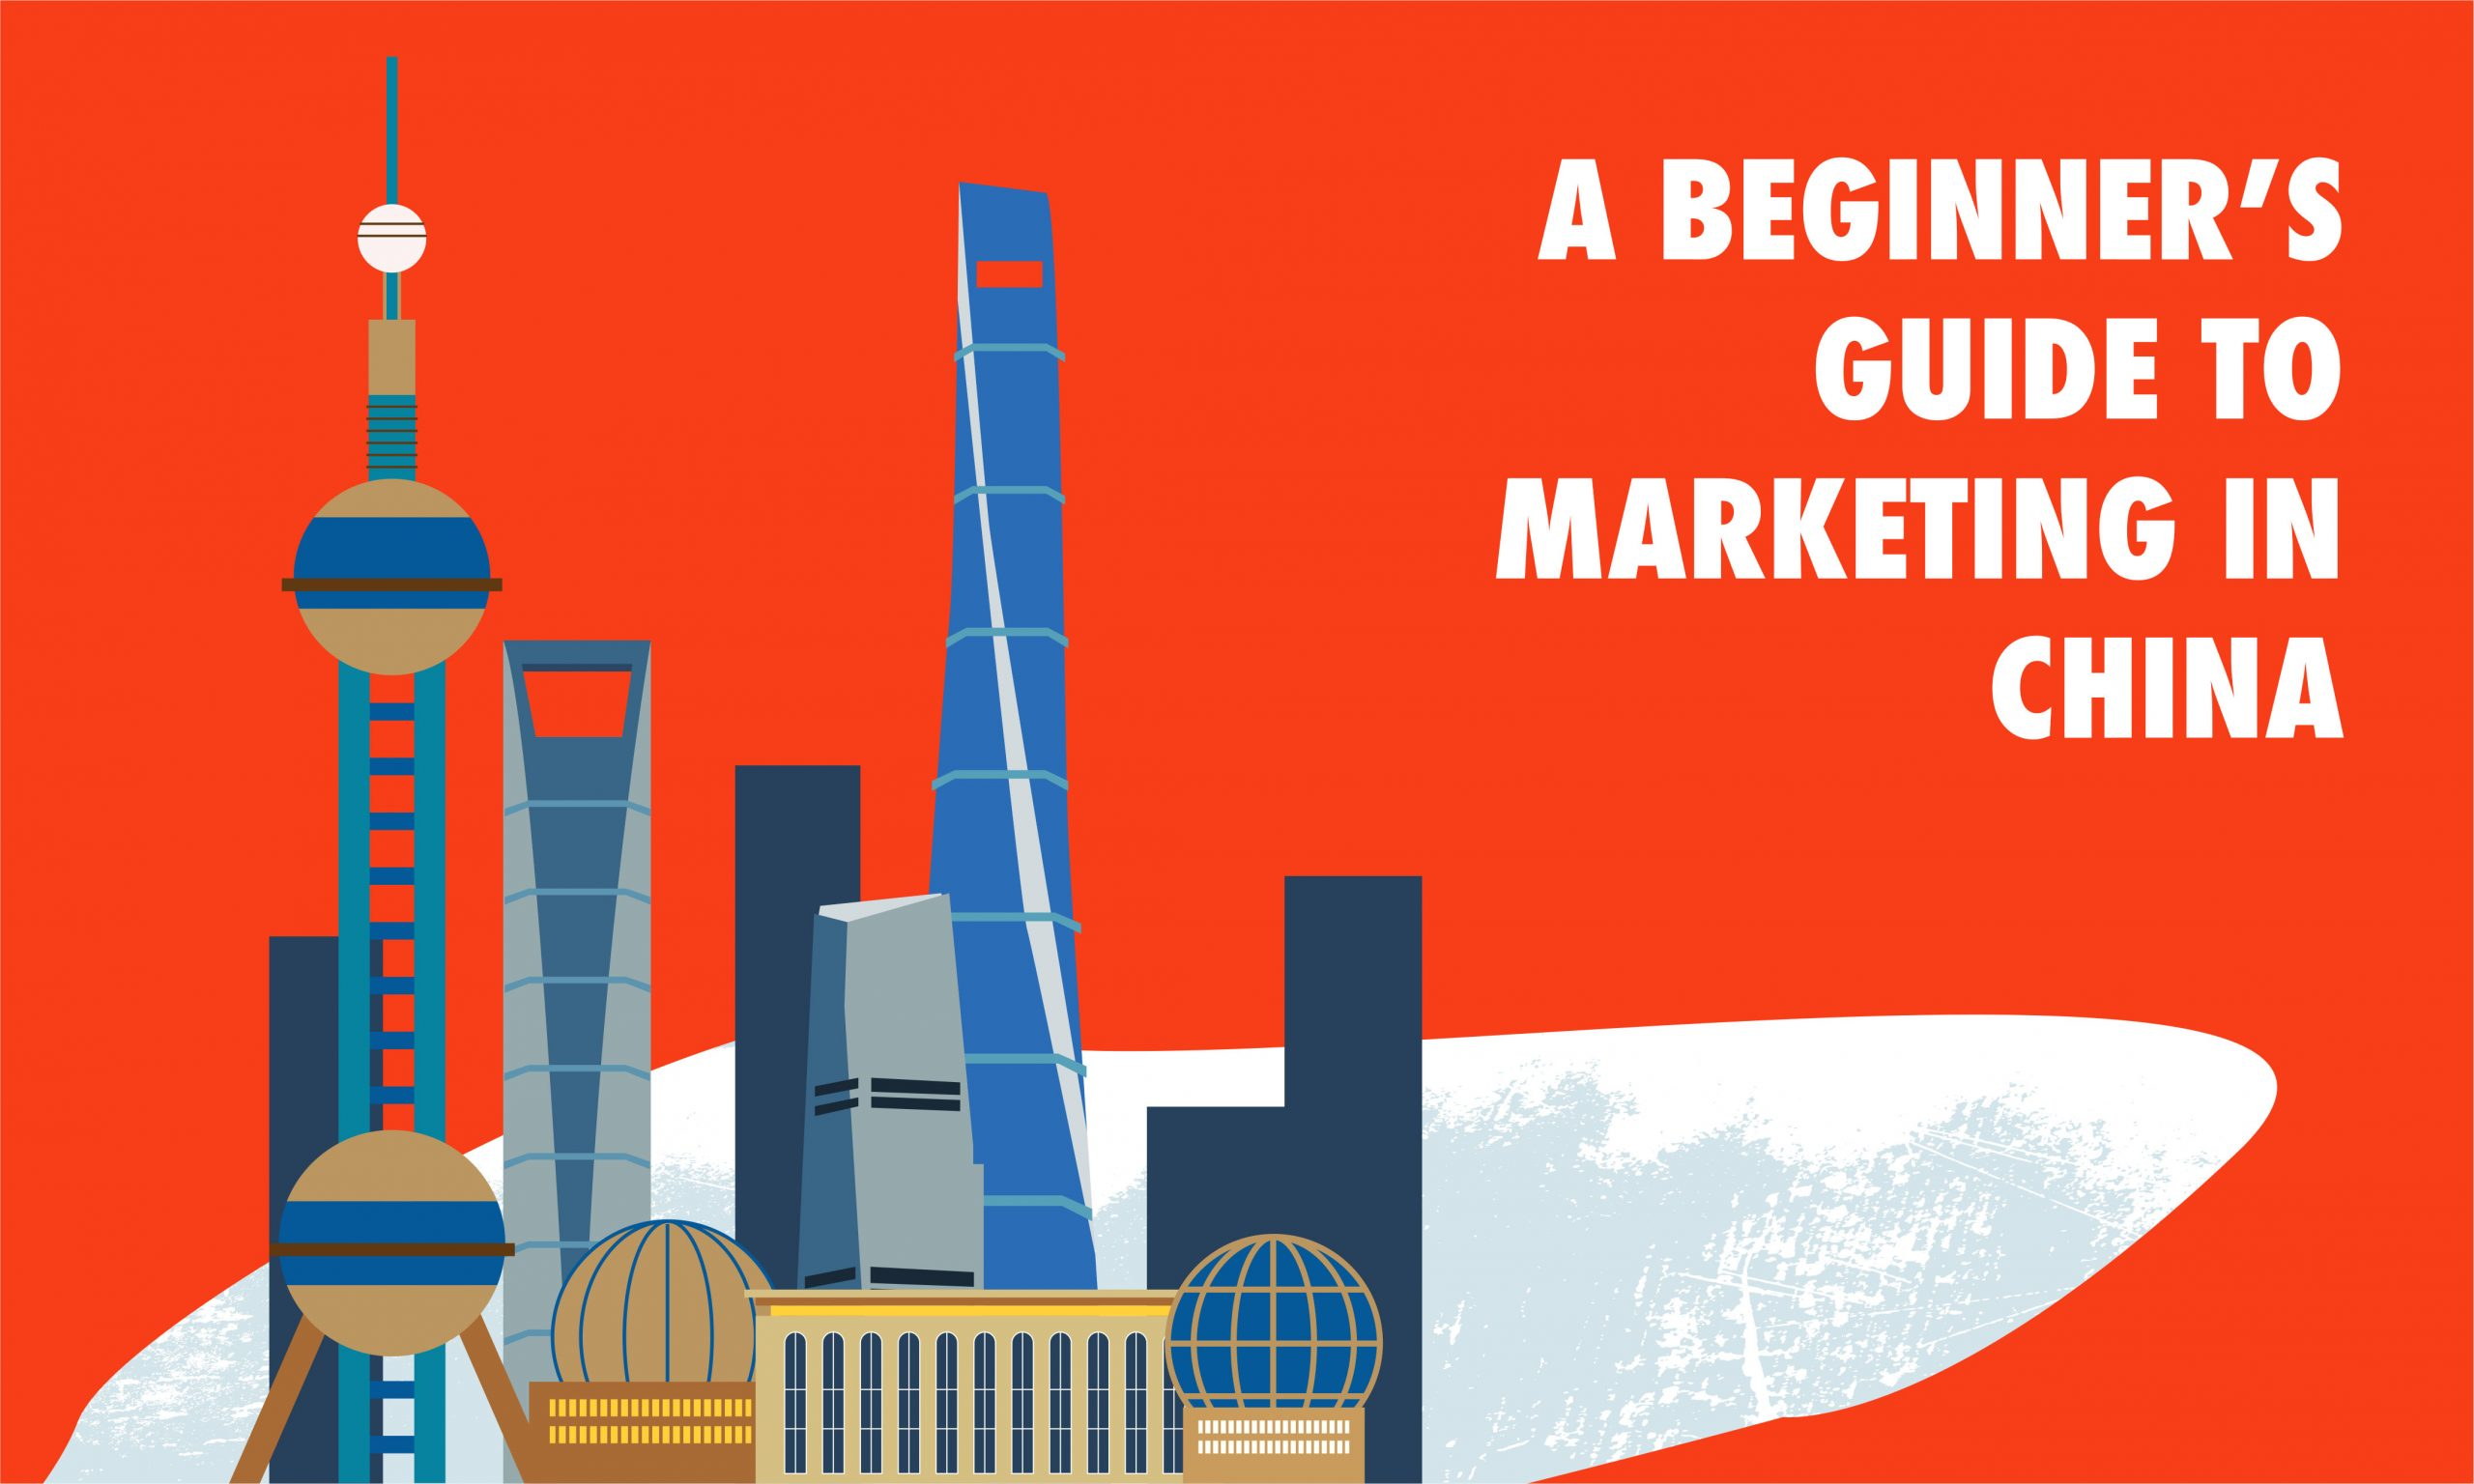 A Beginner's Guide to Marketing in China